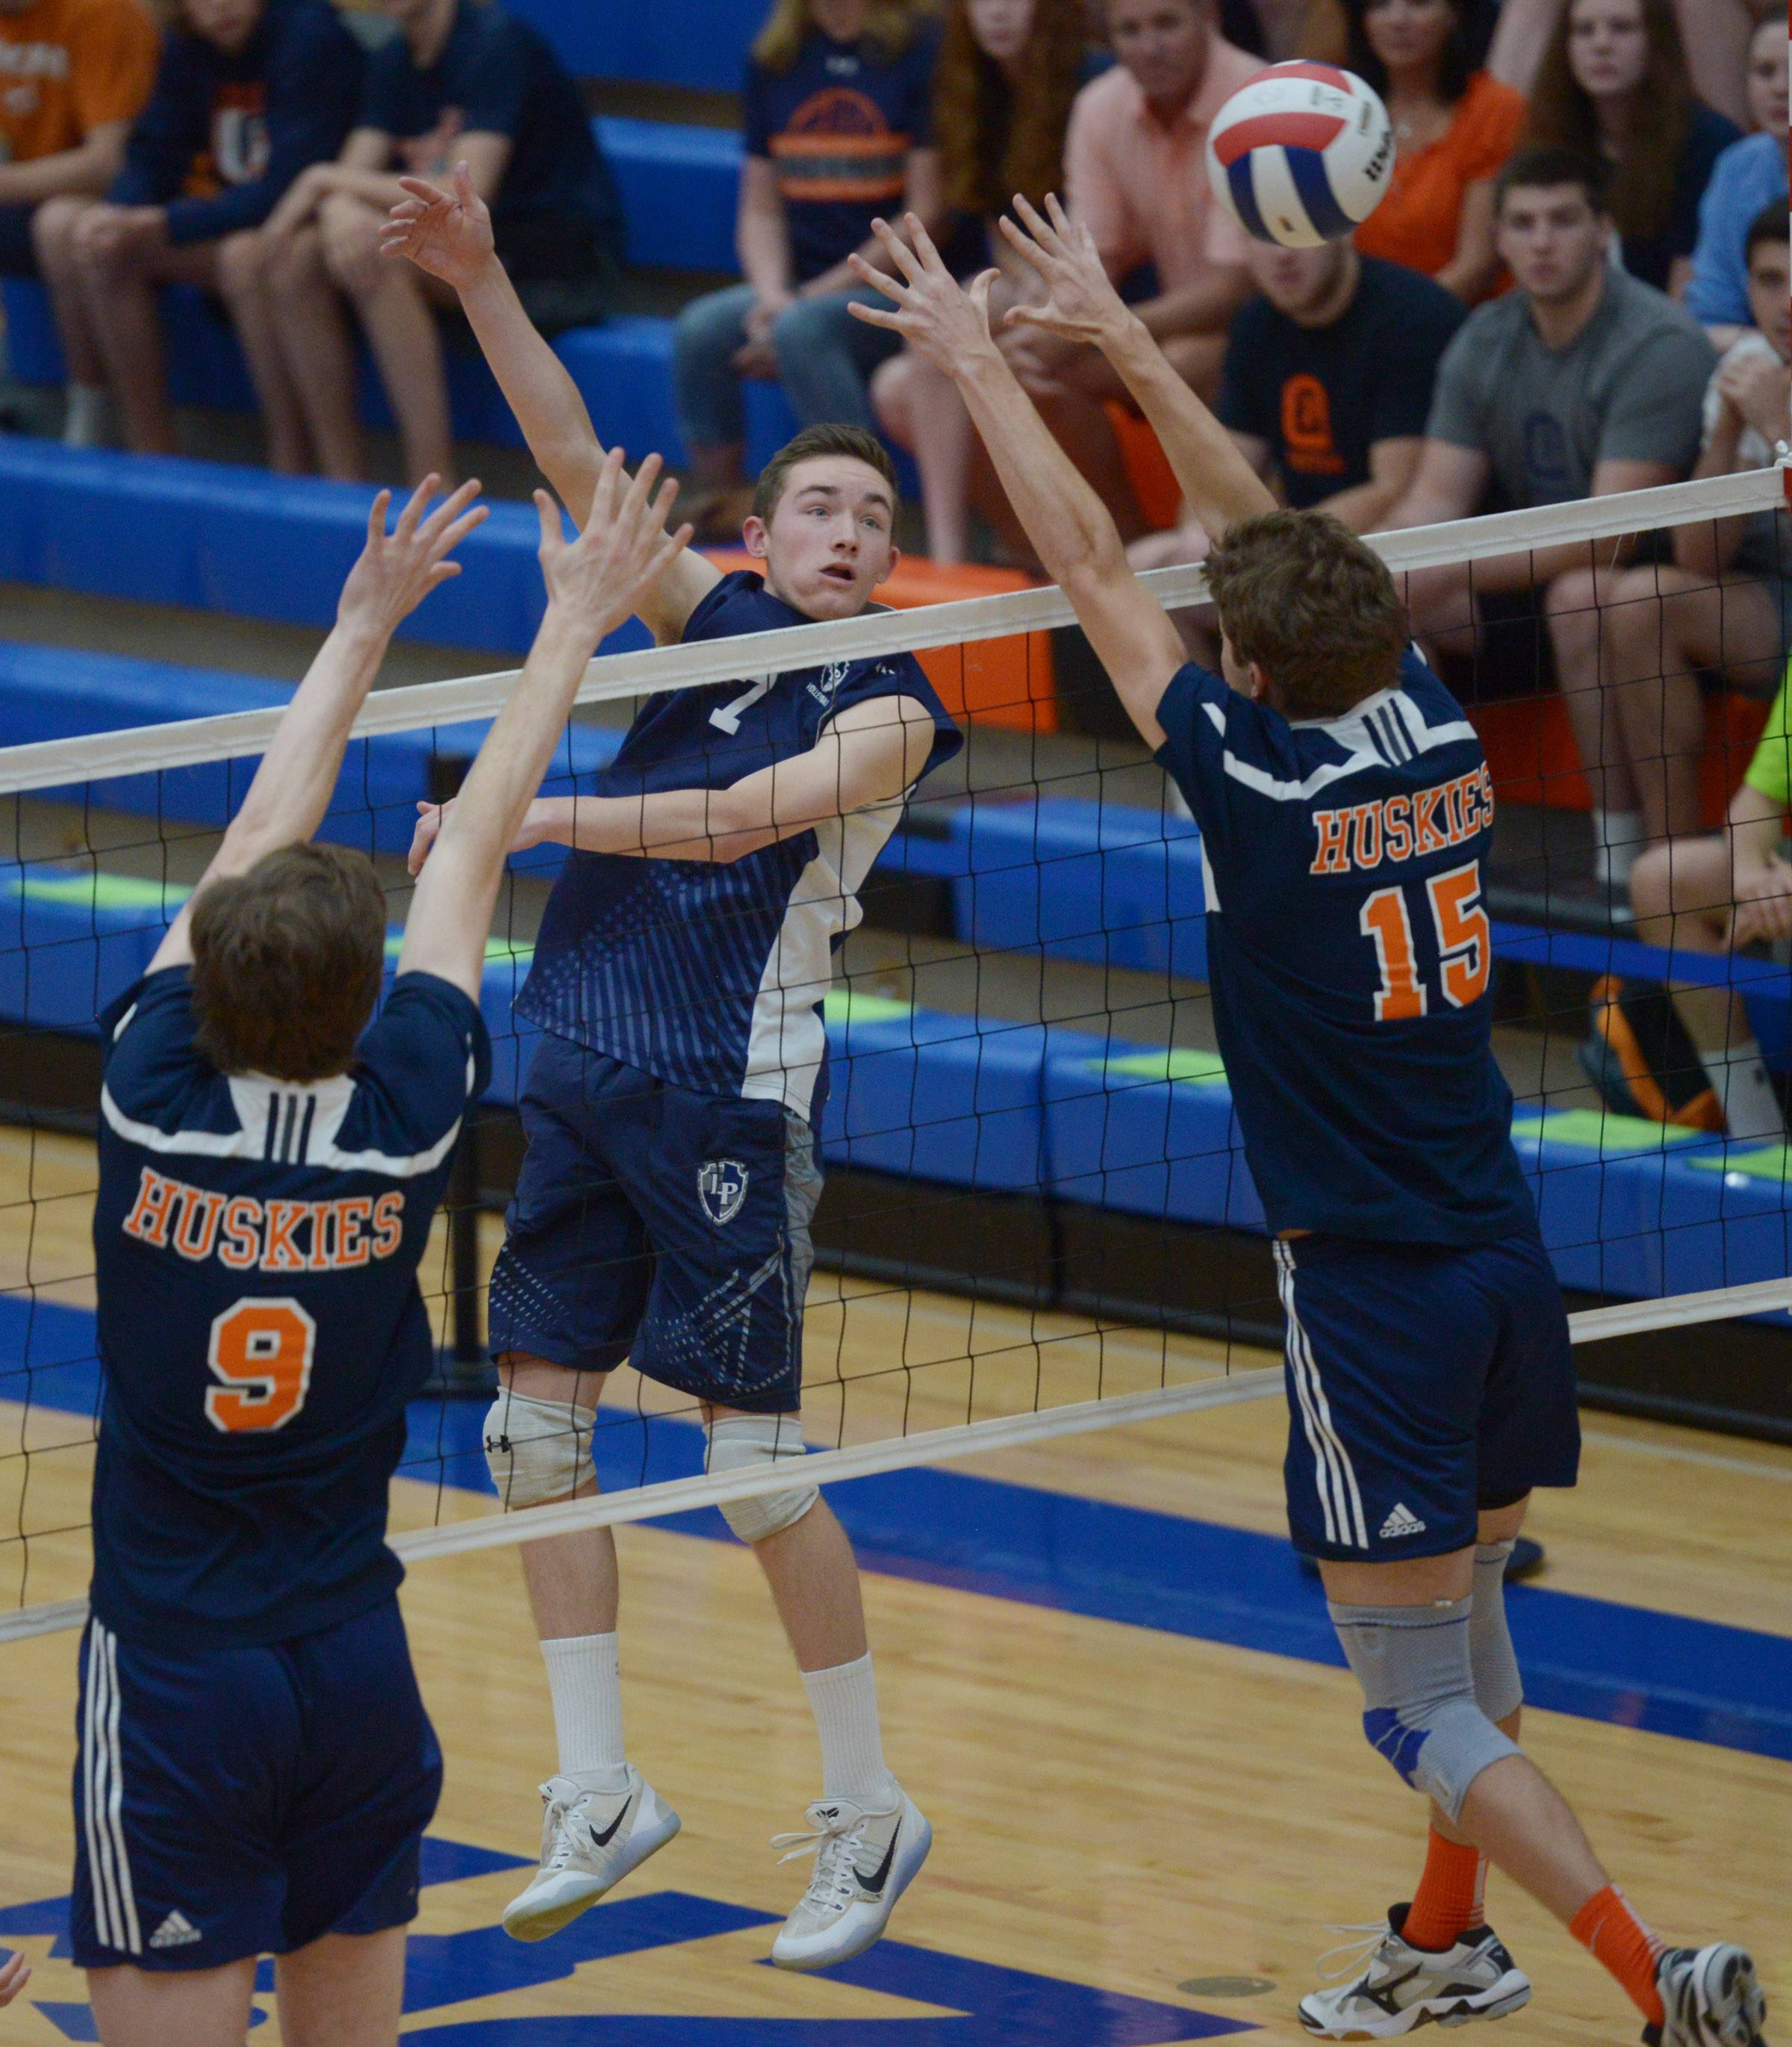 Lake Park's Jack Fischer looks for a kill as Oak Park-Roiver Forest's Jack Valenti, left, and Ben Hancock try for a block during the boys volleyball state quarterfinals at Hoffman Estates High School Friday.